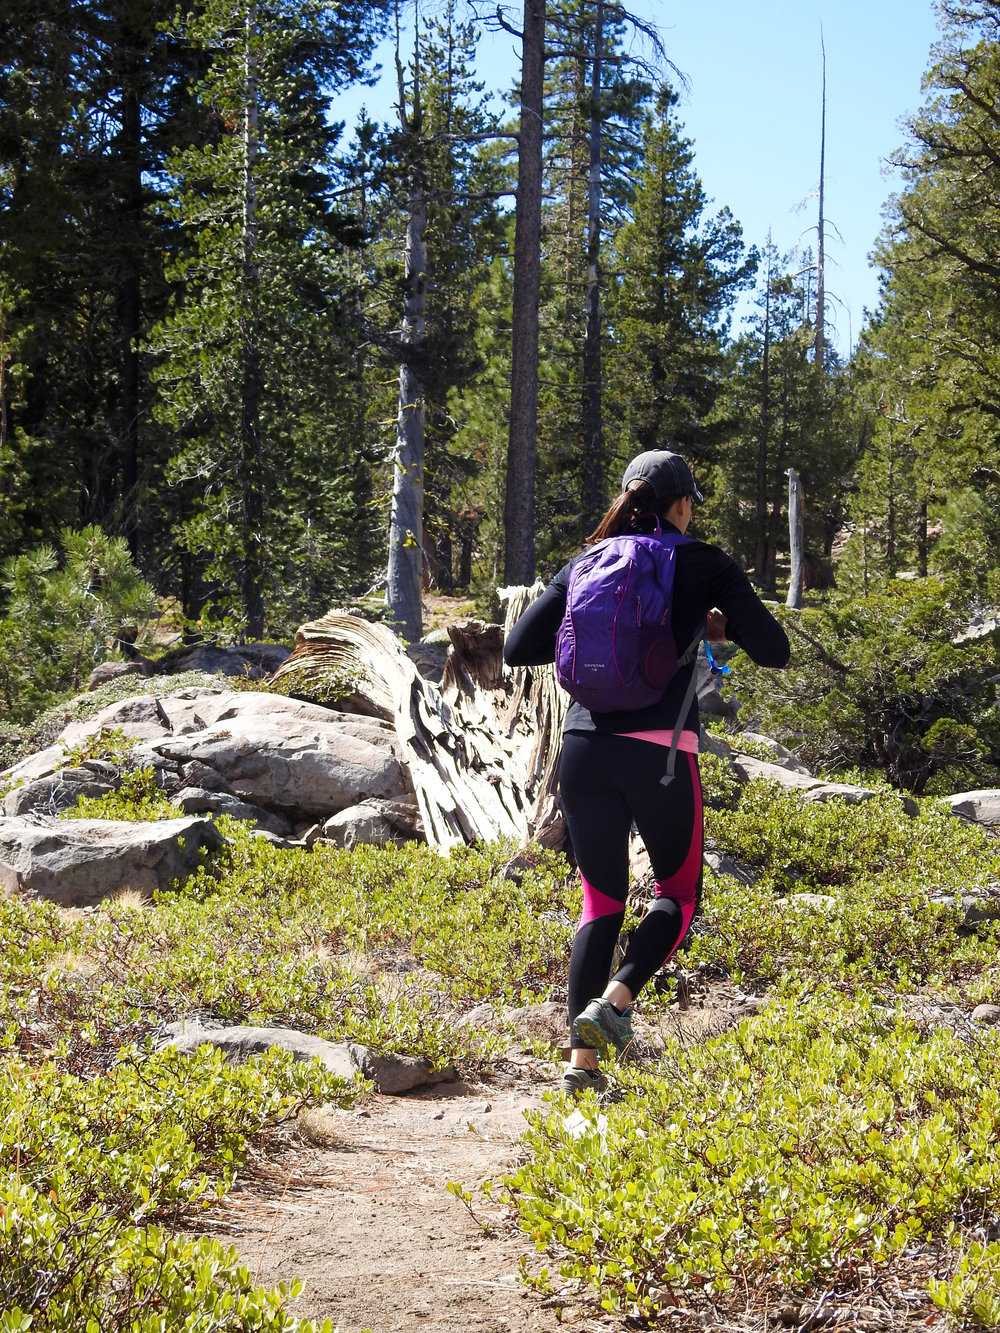 Hiking near Mt. Lassen National Park